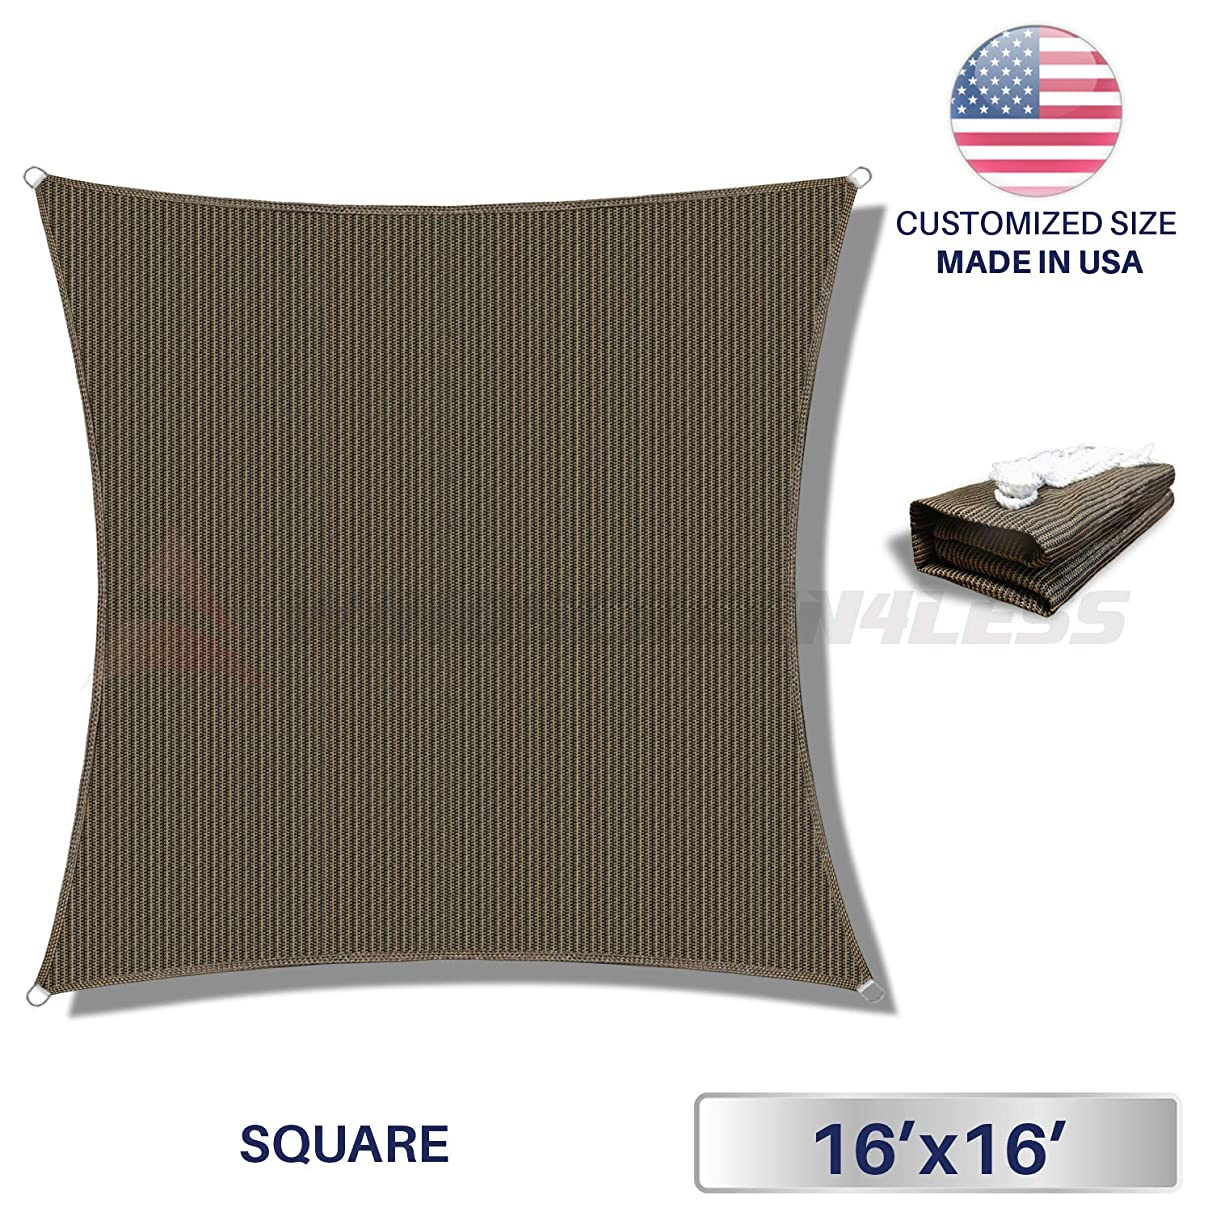 Windscreen4less 16ftx16ft Sun Shade Sail Square Canopy in Brown with Commercial Grade (3 Year Warranty) Customized, x 16